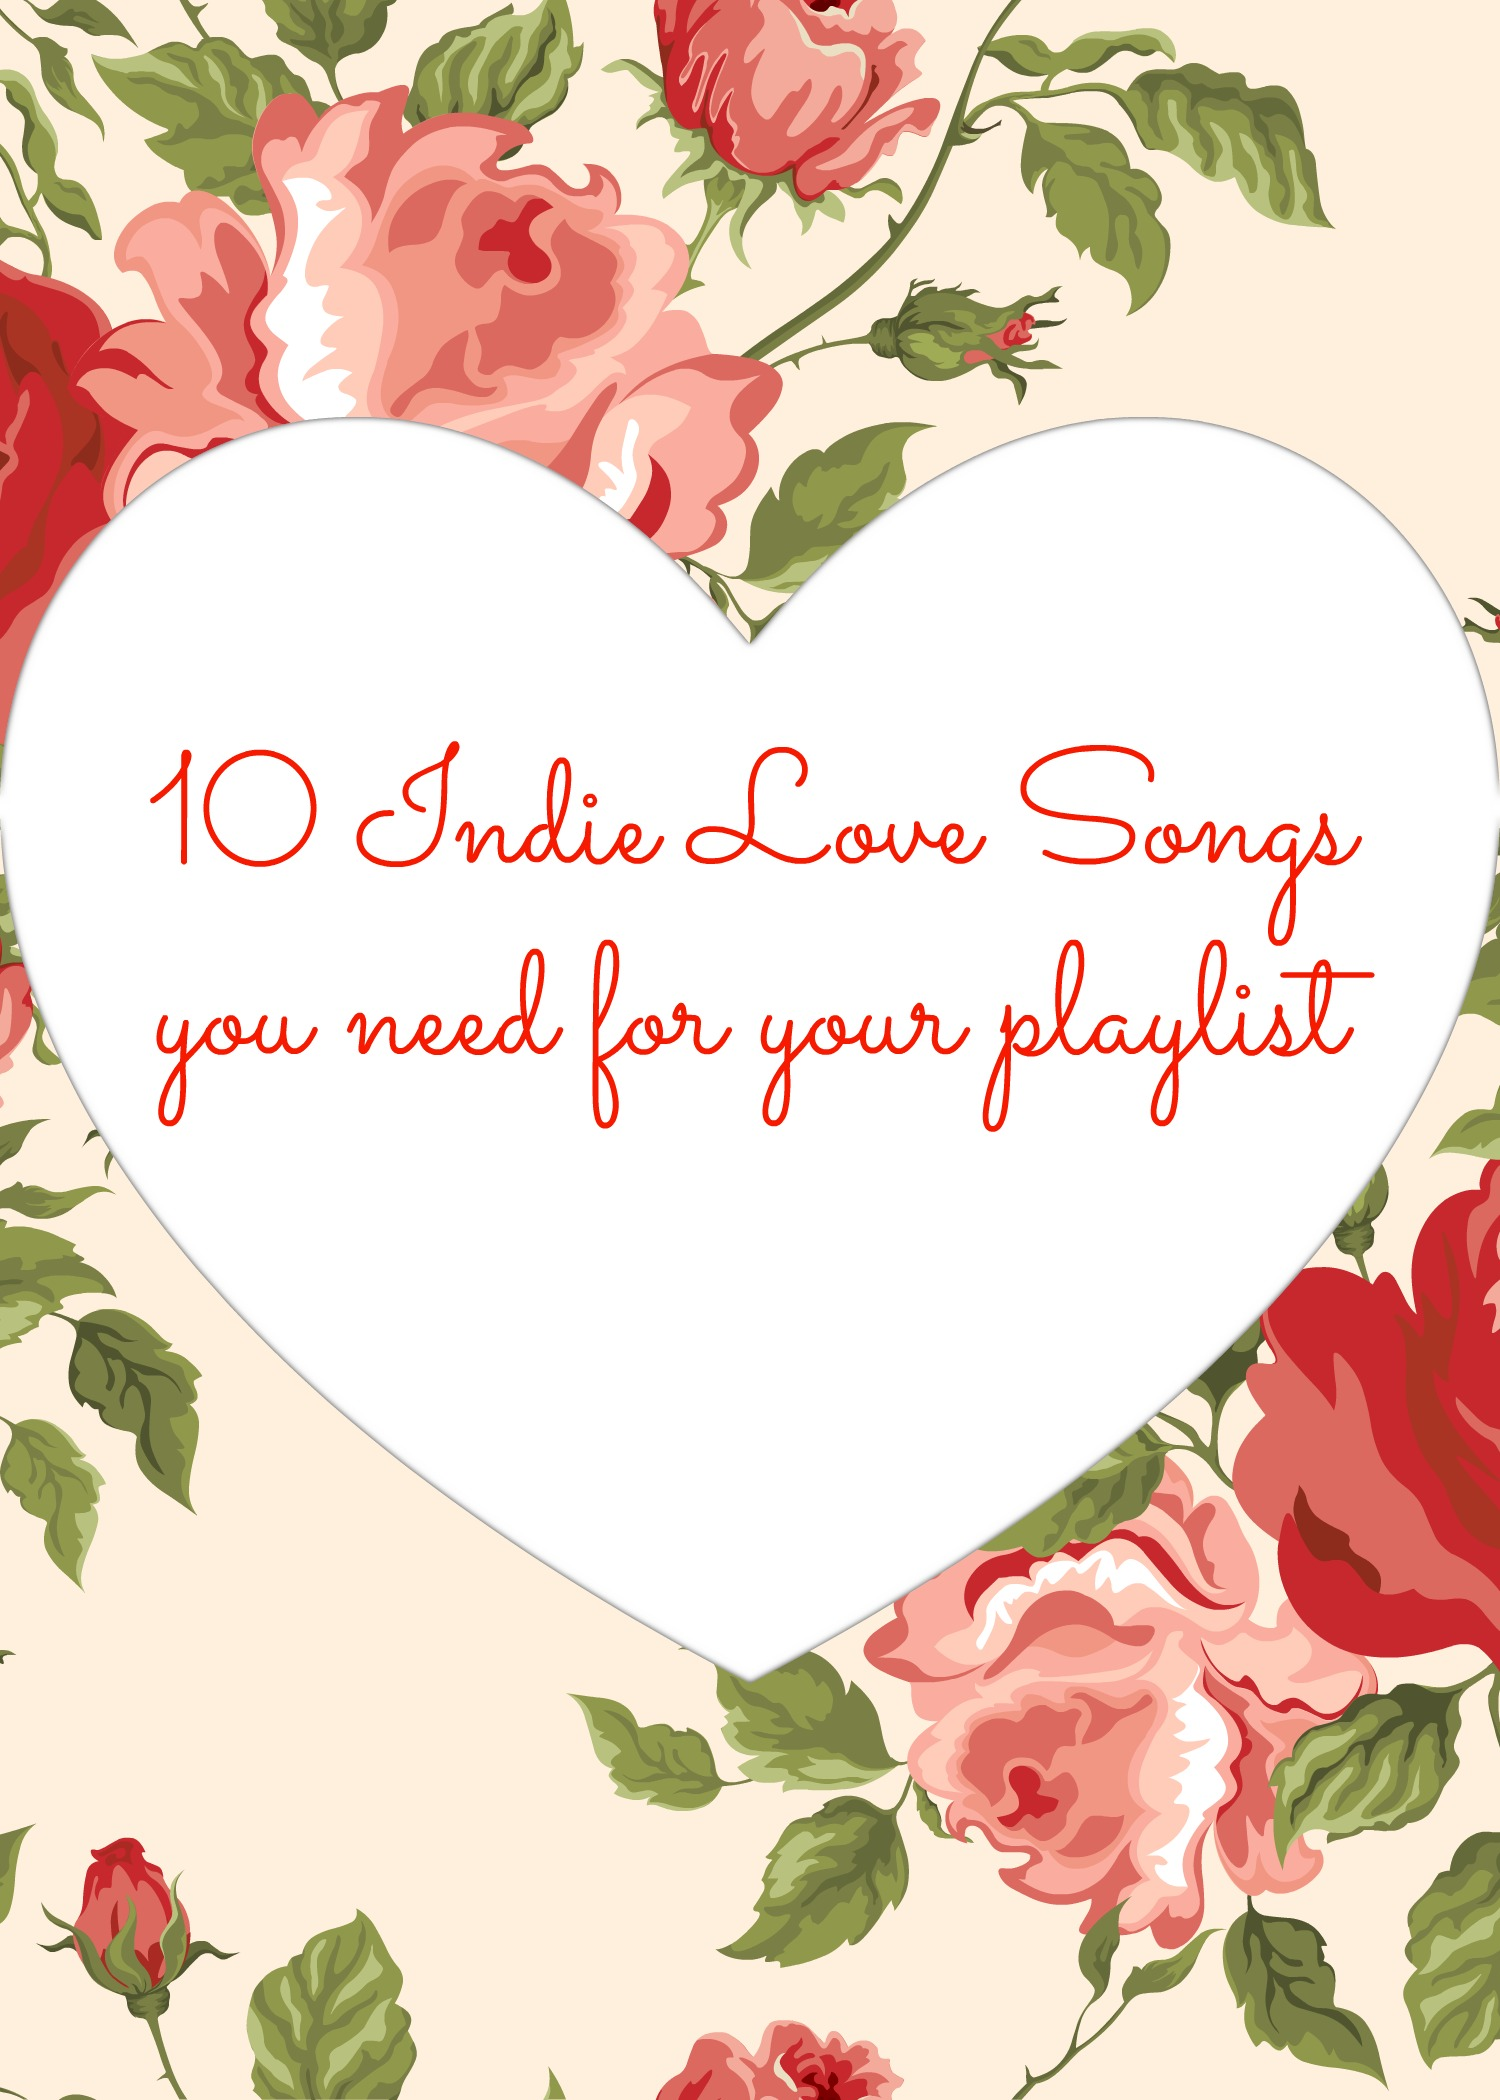 10 Indie Love Songs That You Need On Your Playlist